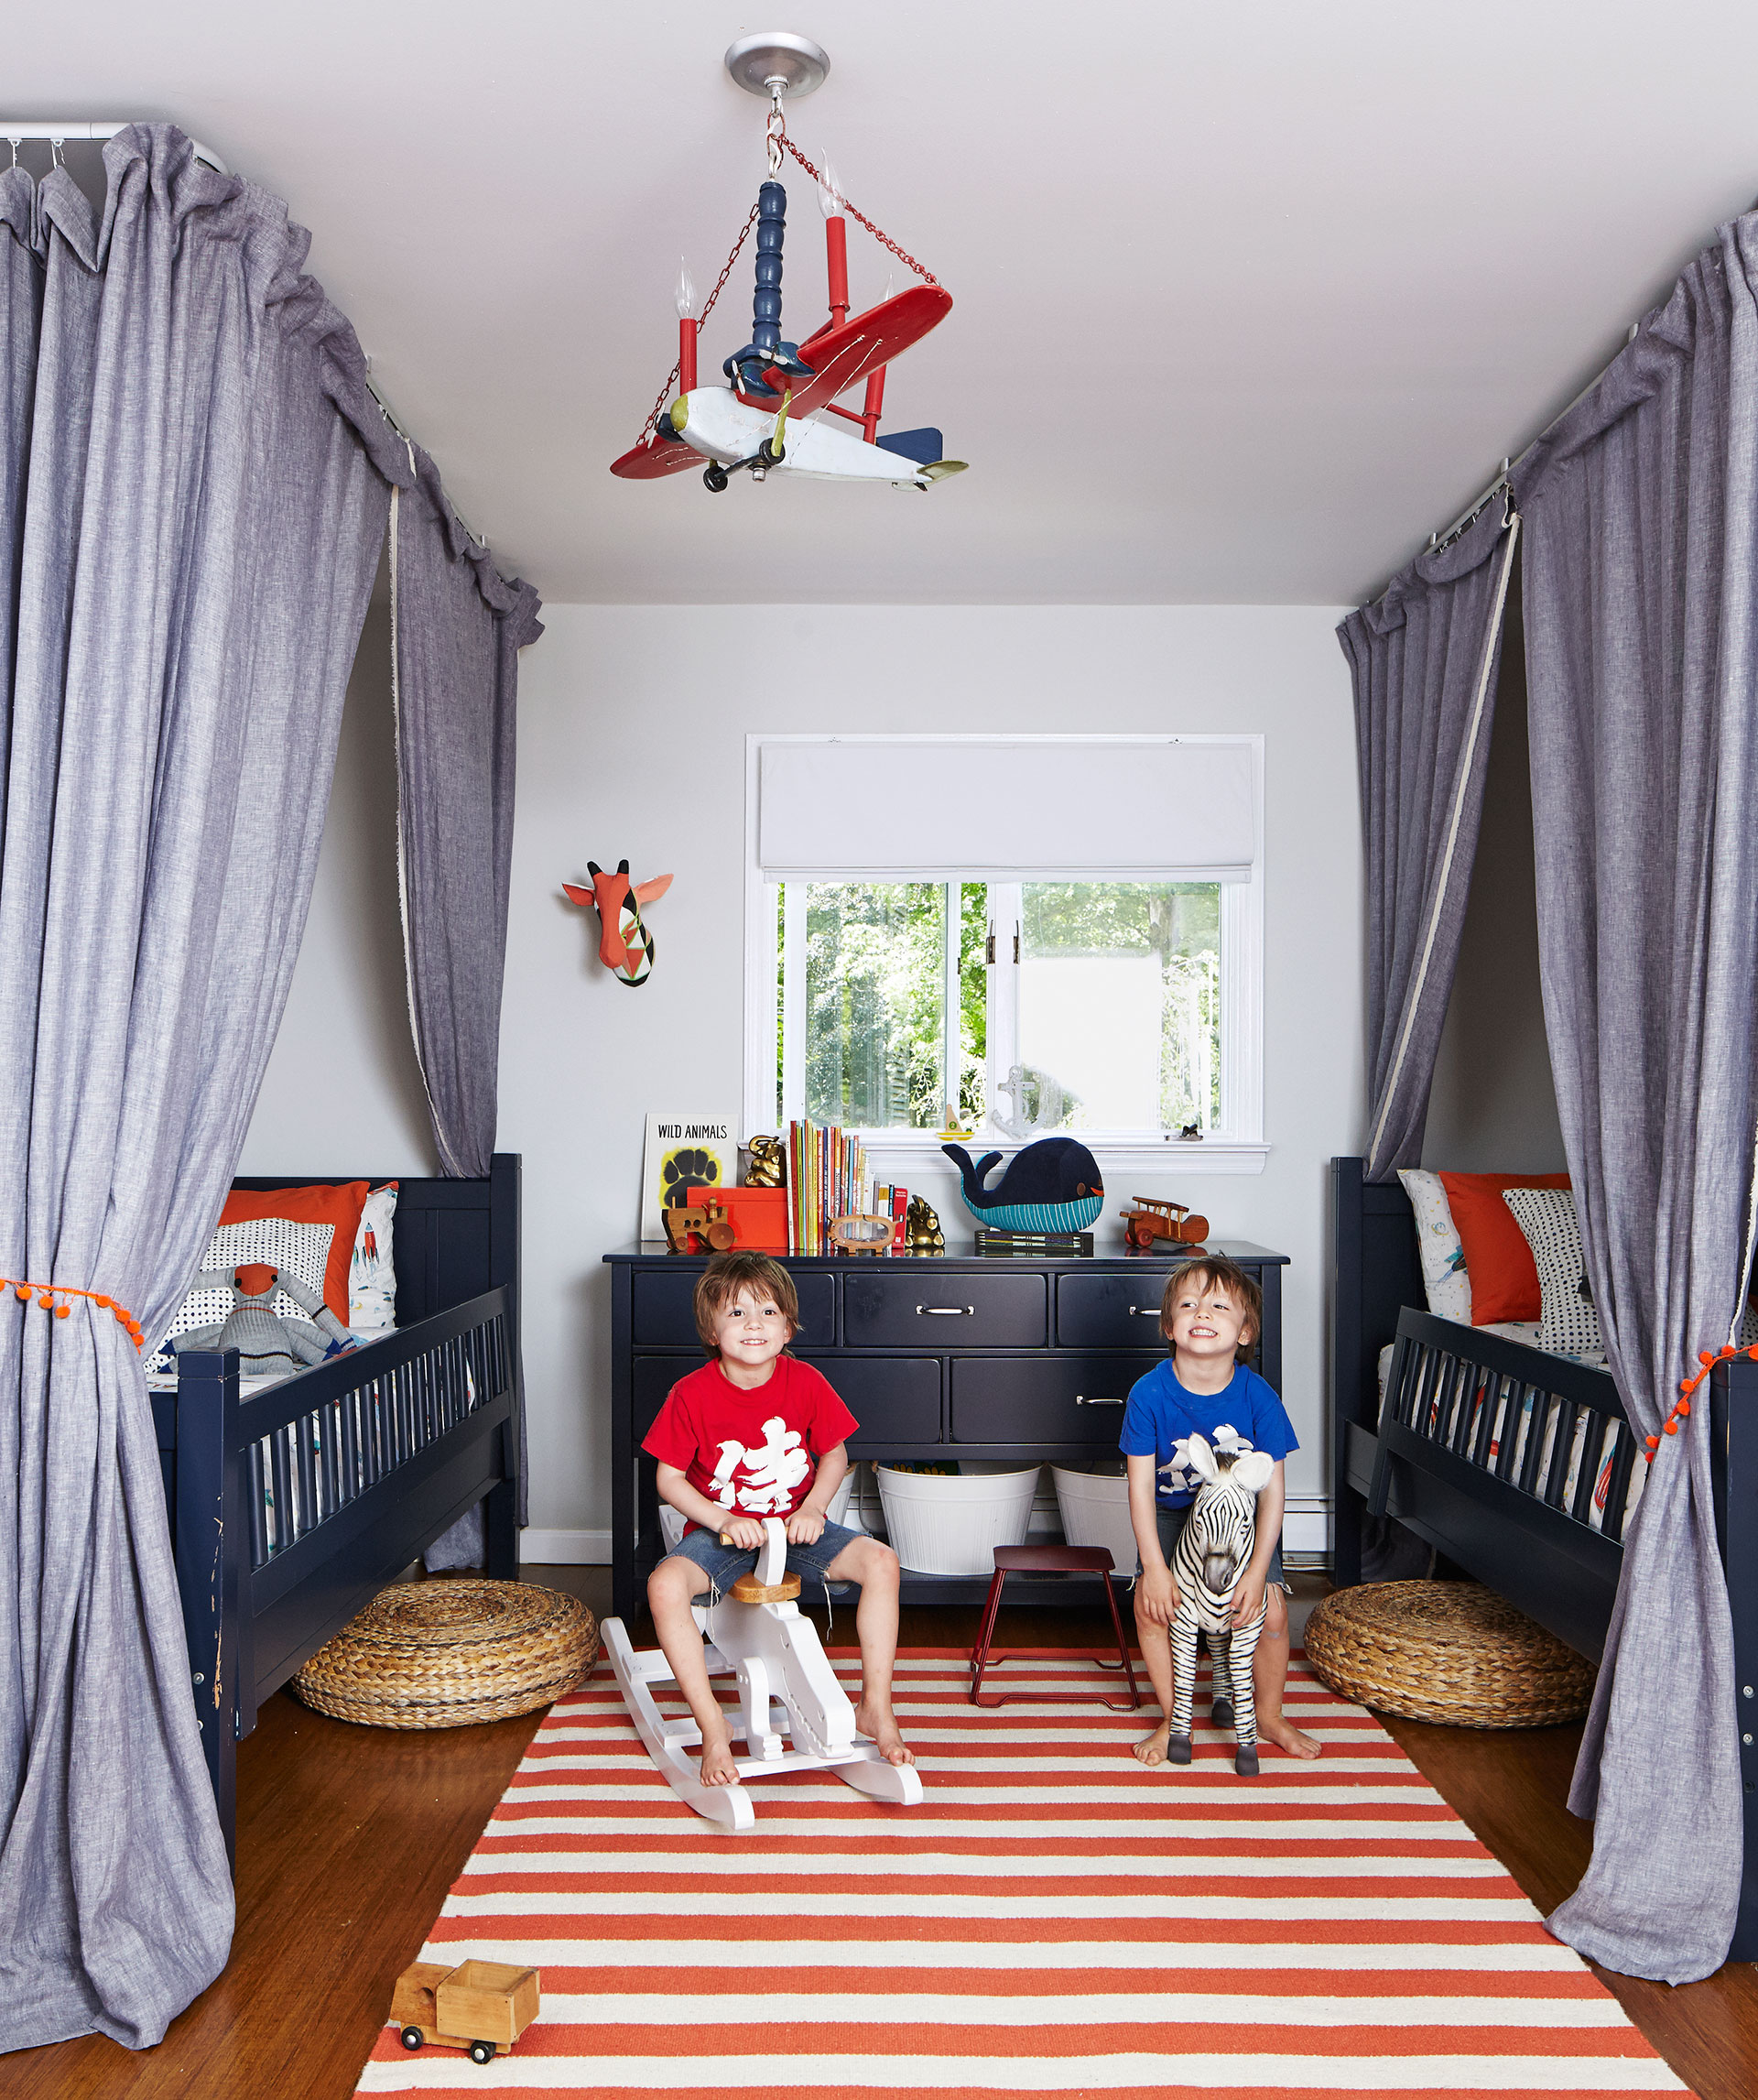 50 kids room decor ideas bedroom design and decorating for kids - Kids Room Furniture Ideas